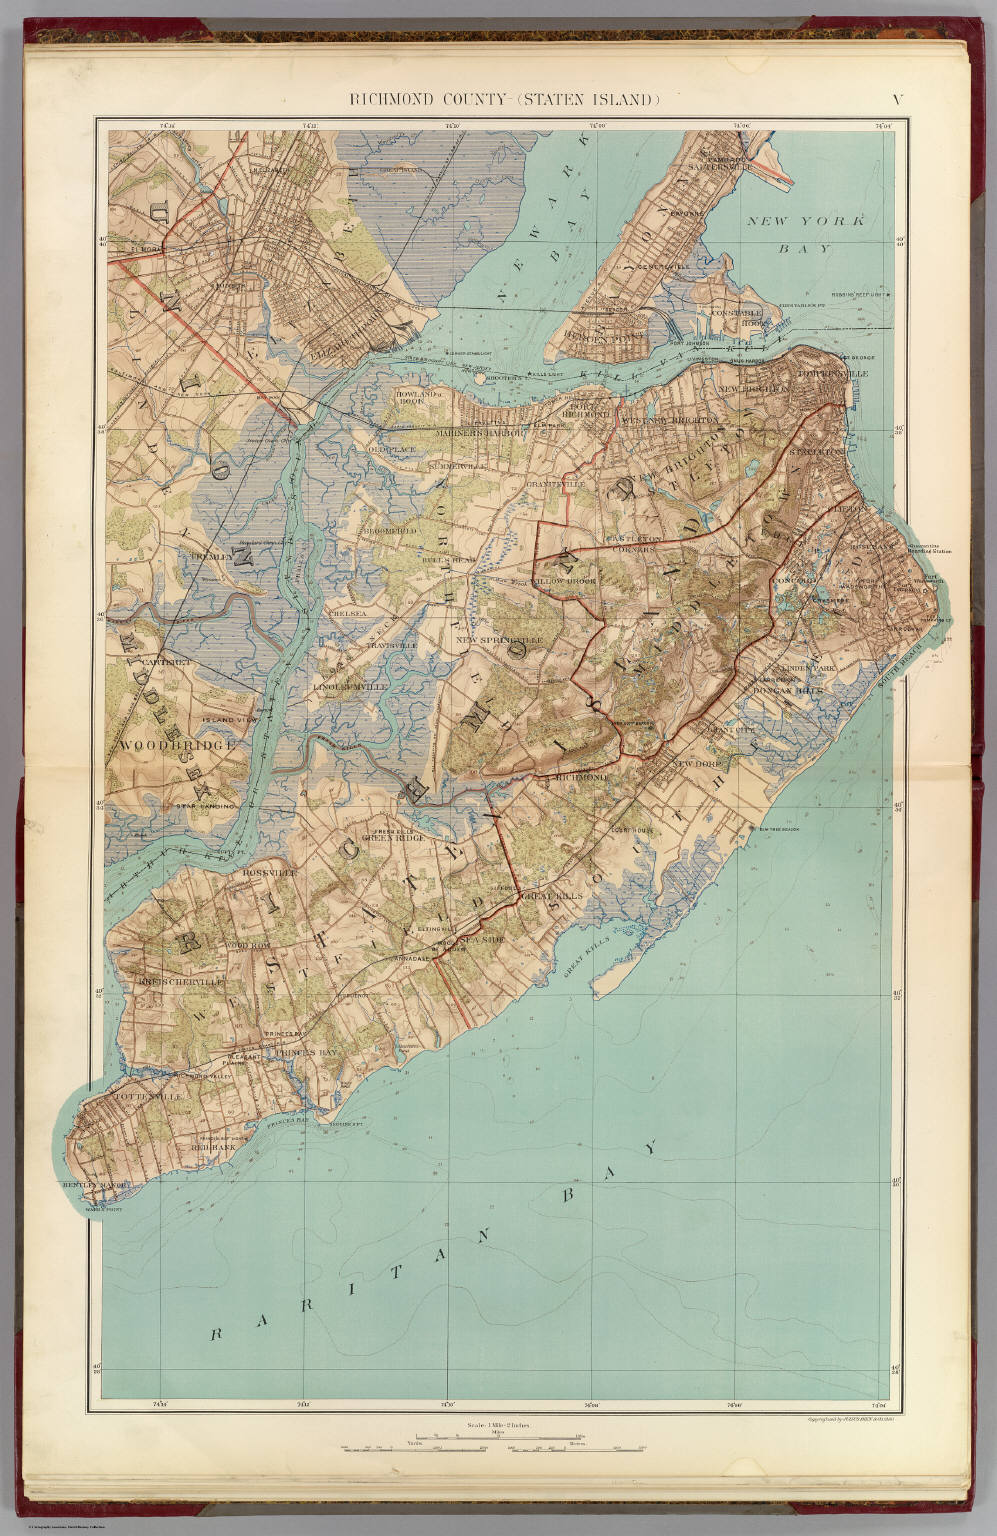 Richmond Co., Staten Island.   David Rumsey Historical Map Collection